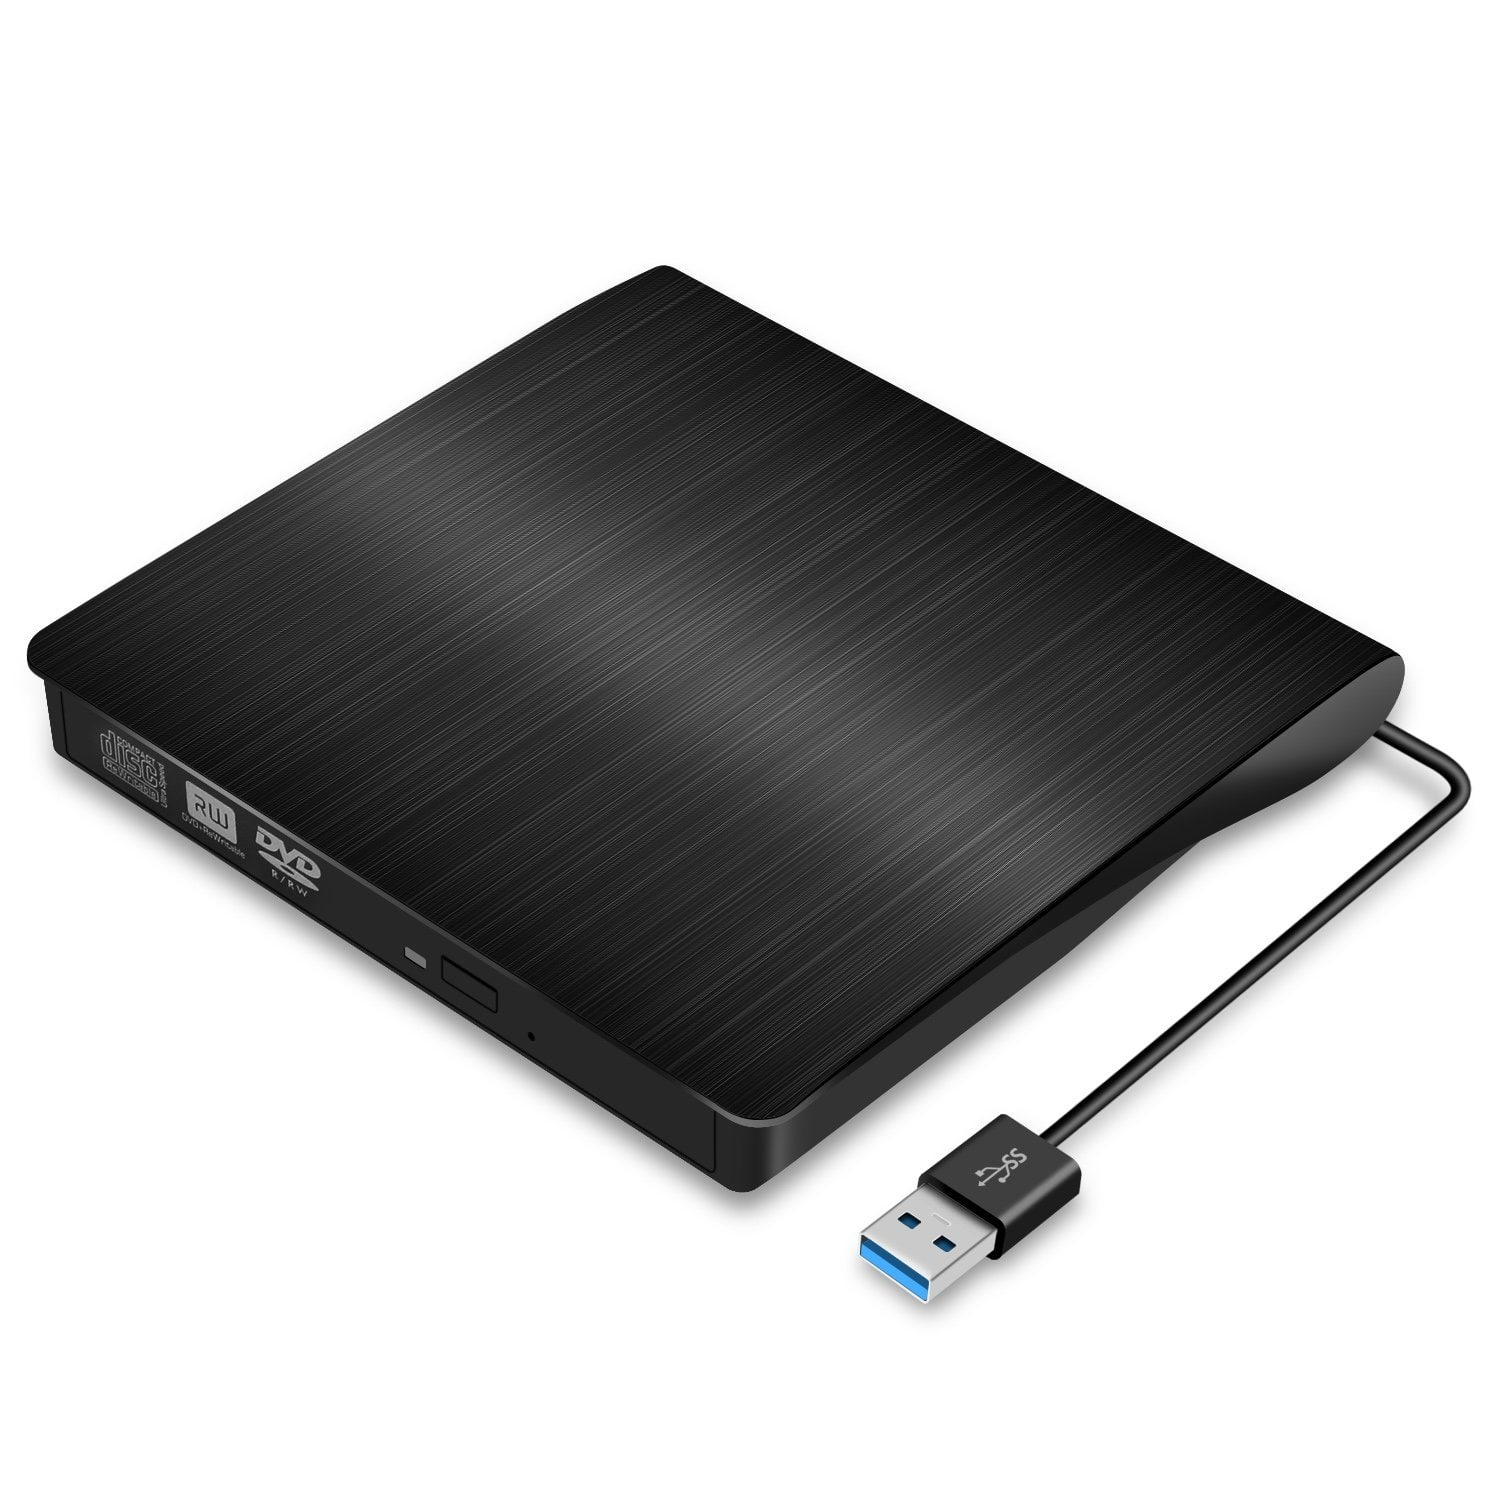 Usb 30 External Dvd Drive Slim Portable Cd Rewriter M Tech Rw Burner For